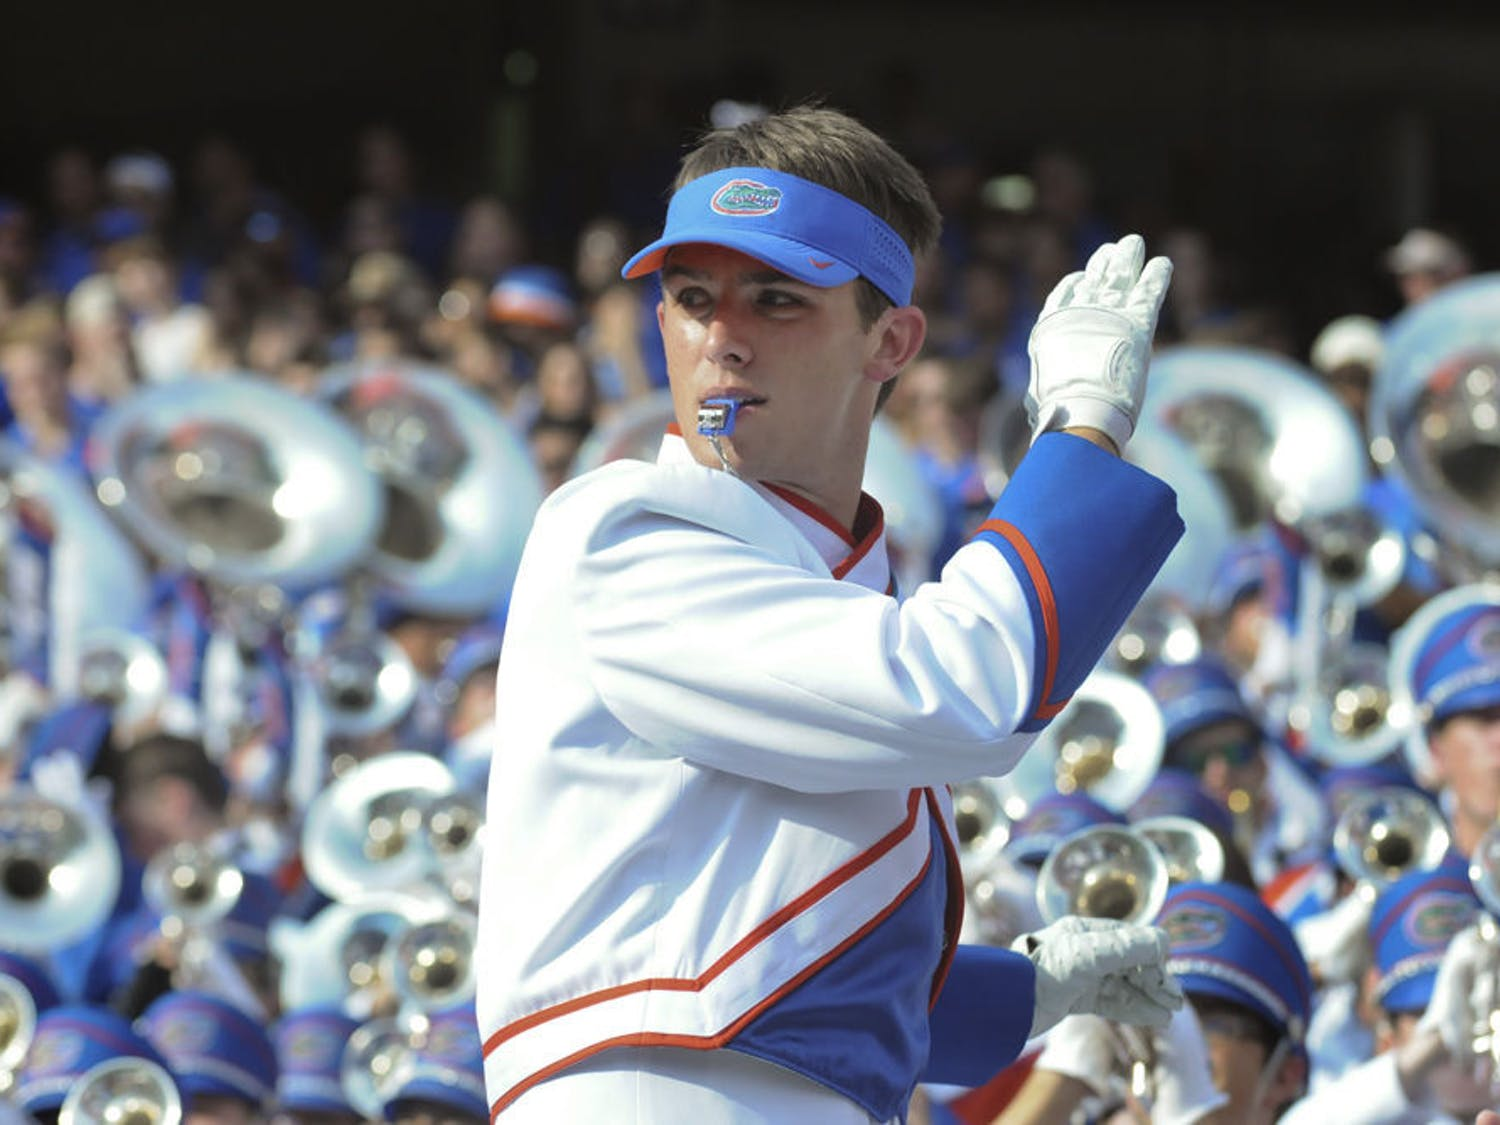 Ben Judkins conducts the Gator Band during UF's 38-10 win against Ole Miss on Oct. 3, 2015,at Ben Hill Griffin Stadium. The drum major has directed the 350-student band, along with two other drum majors, for two years.